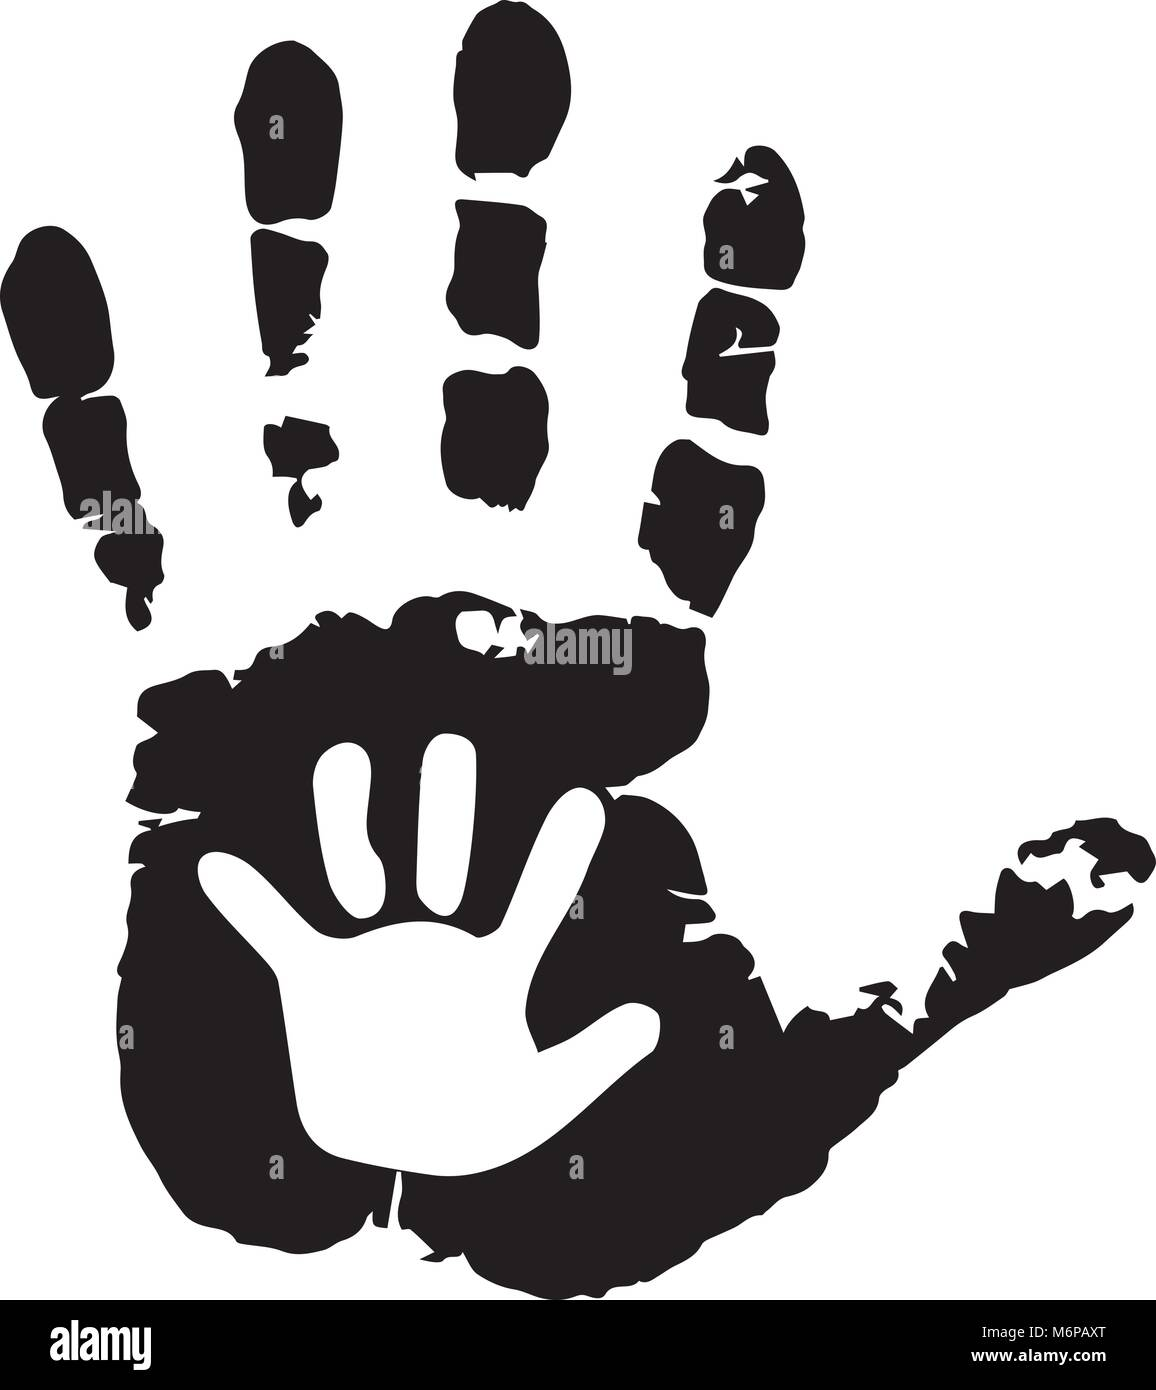 Black and white silhouette of adult and baby hands on white. Mother or father and child handprint. Palm of man and - Stock Image